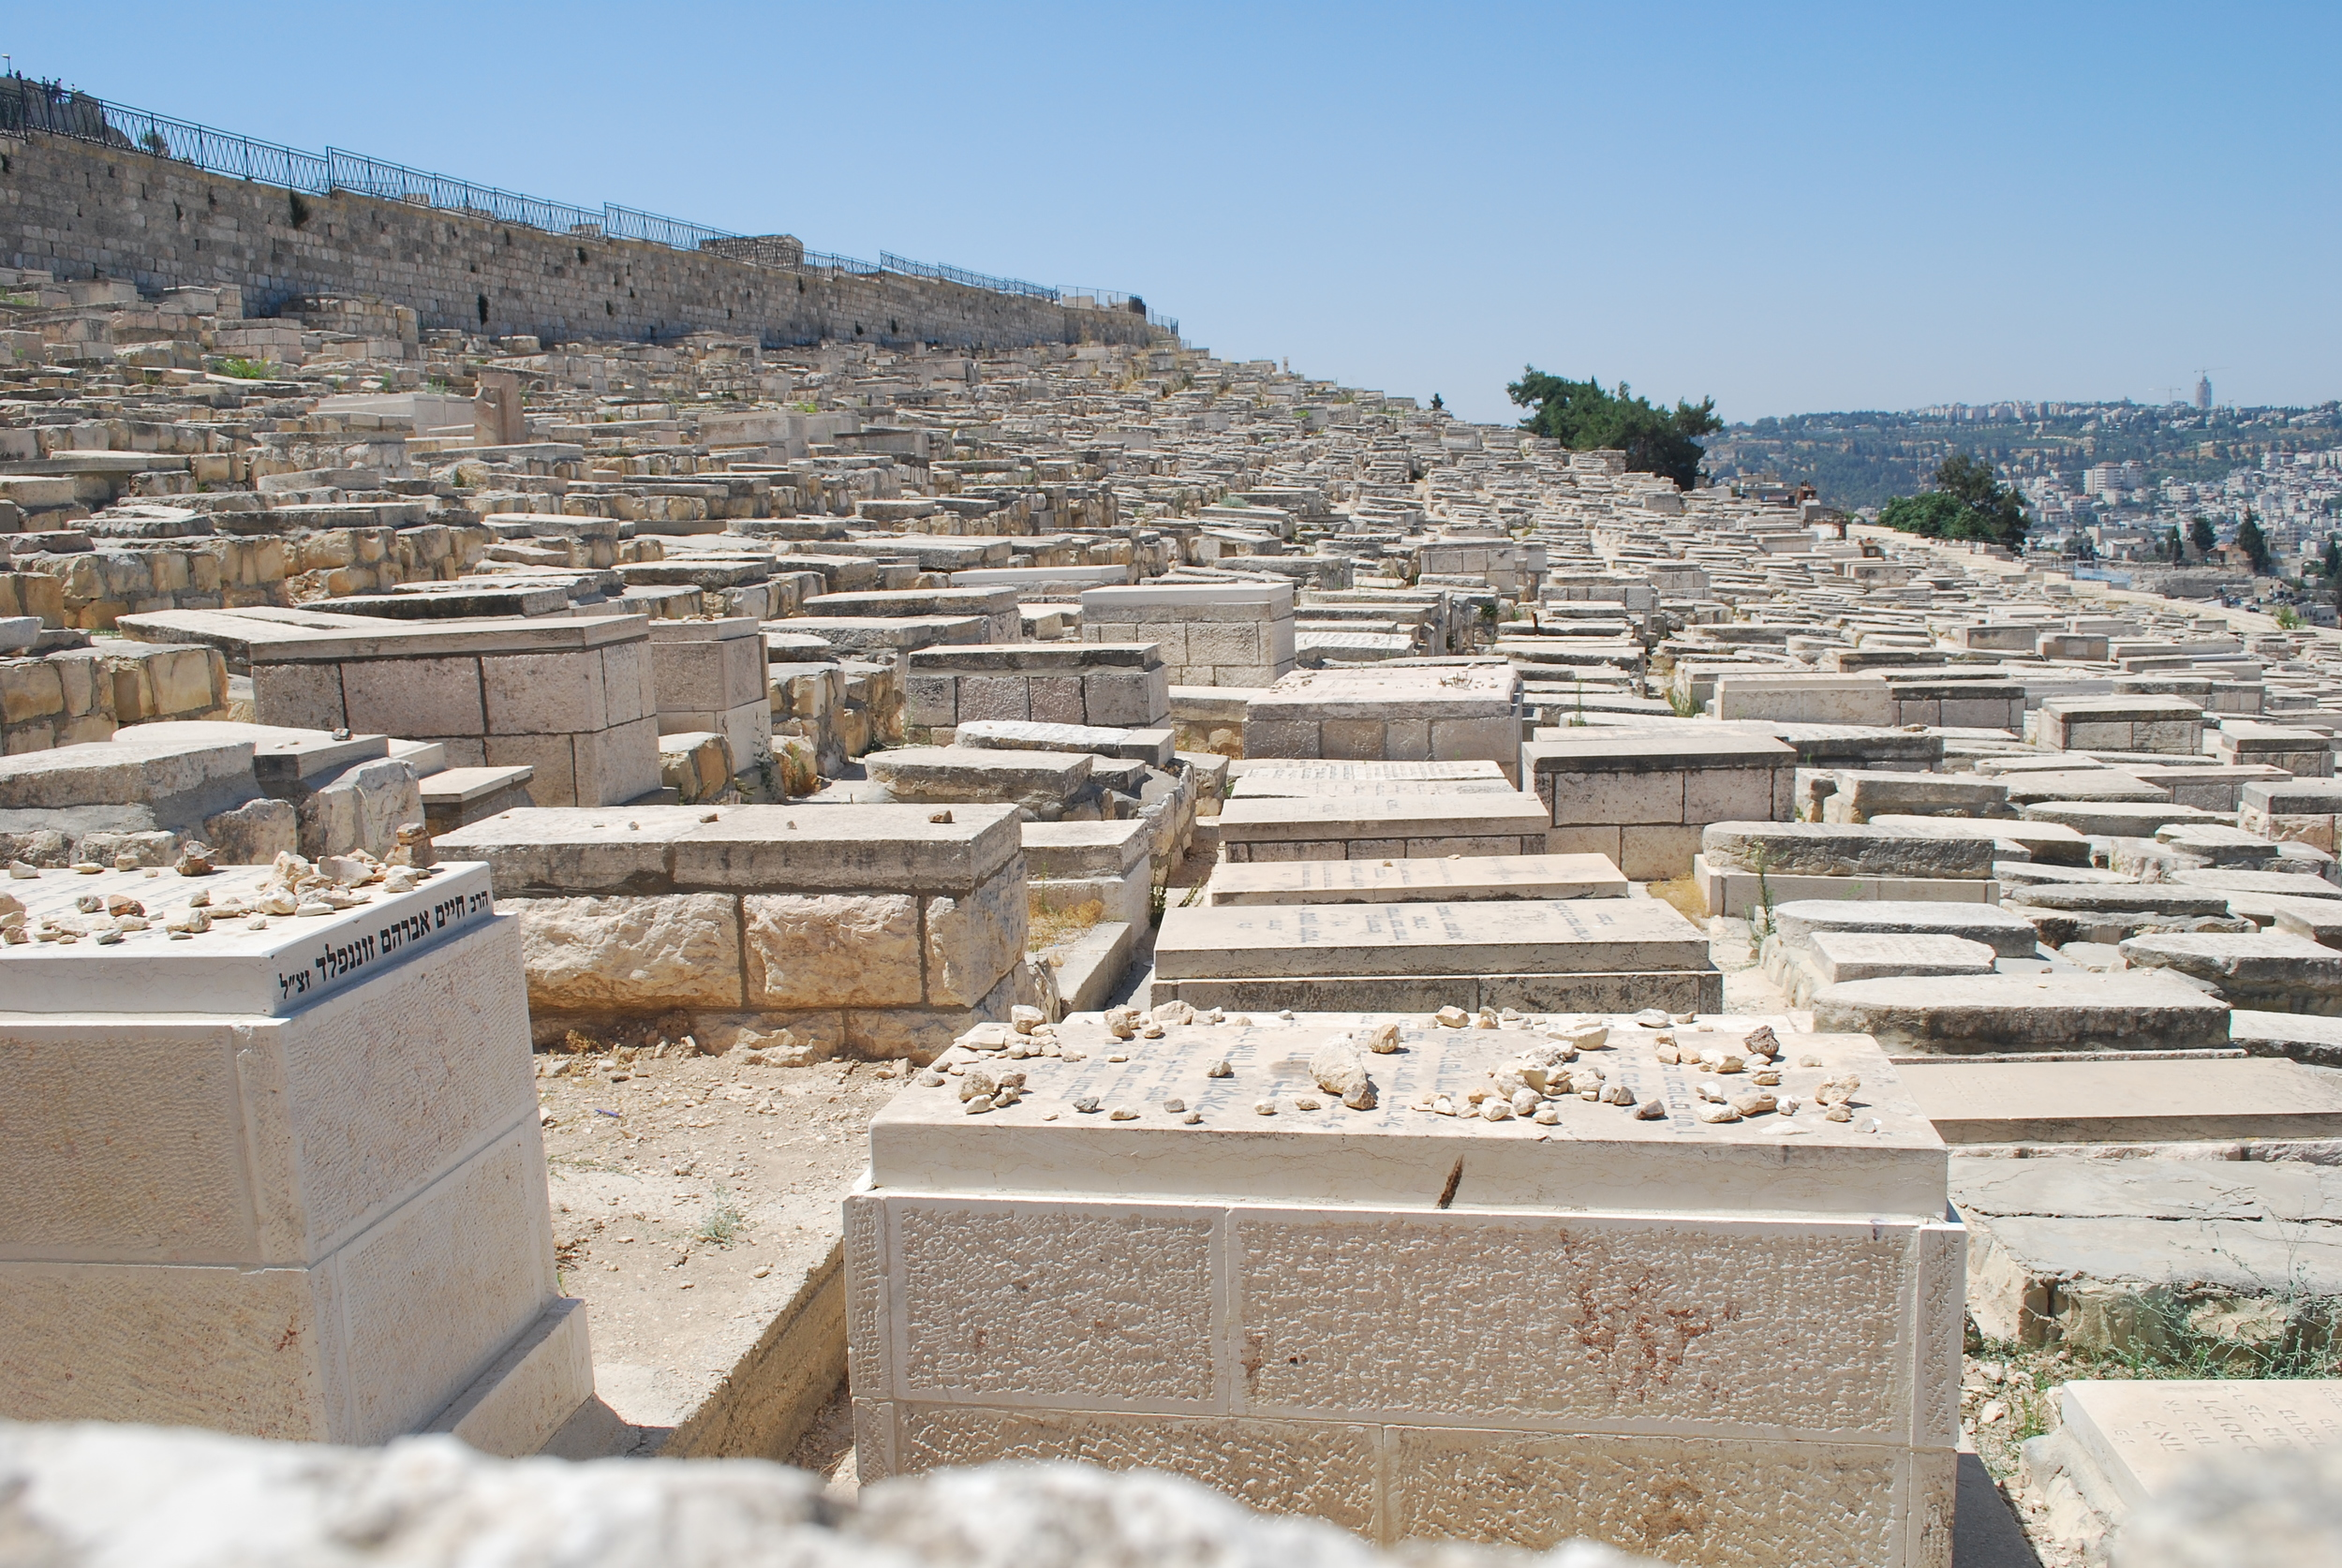 An ancient cemetery just outside the city and surrounding the Mount of Olives.